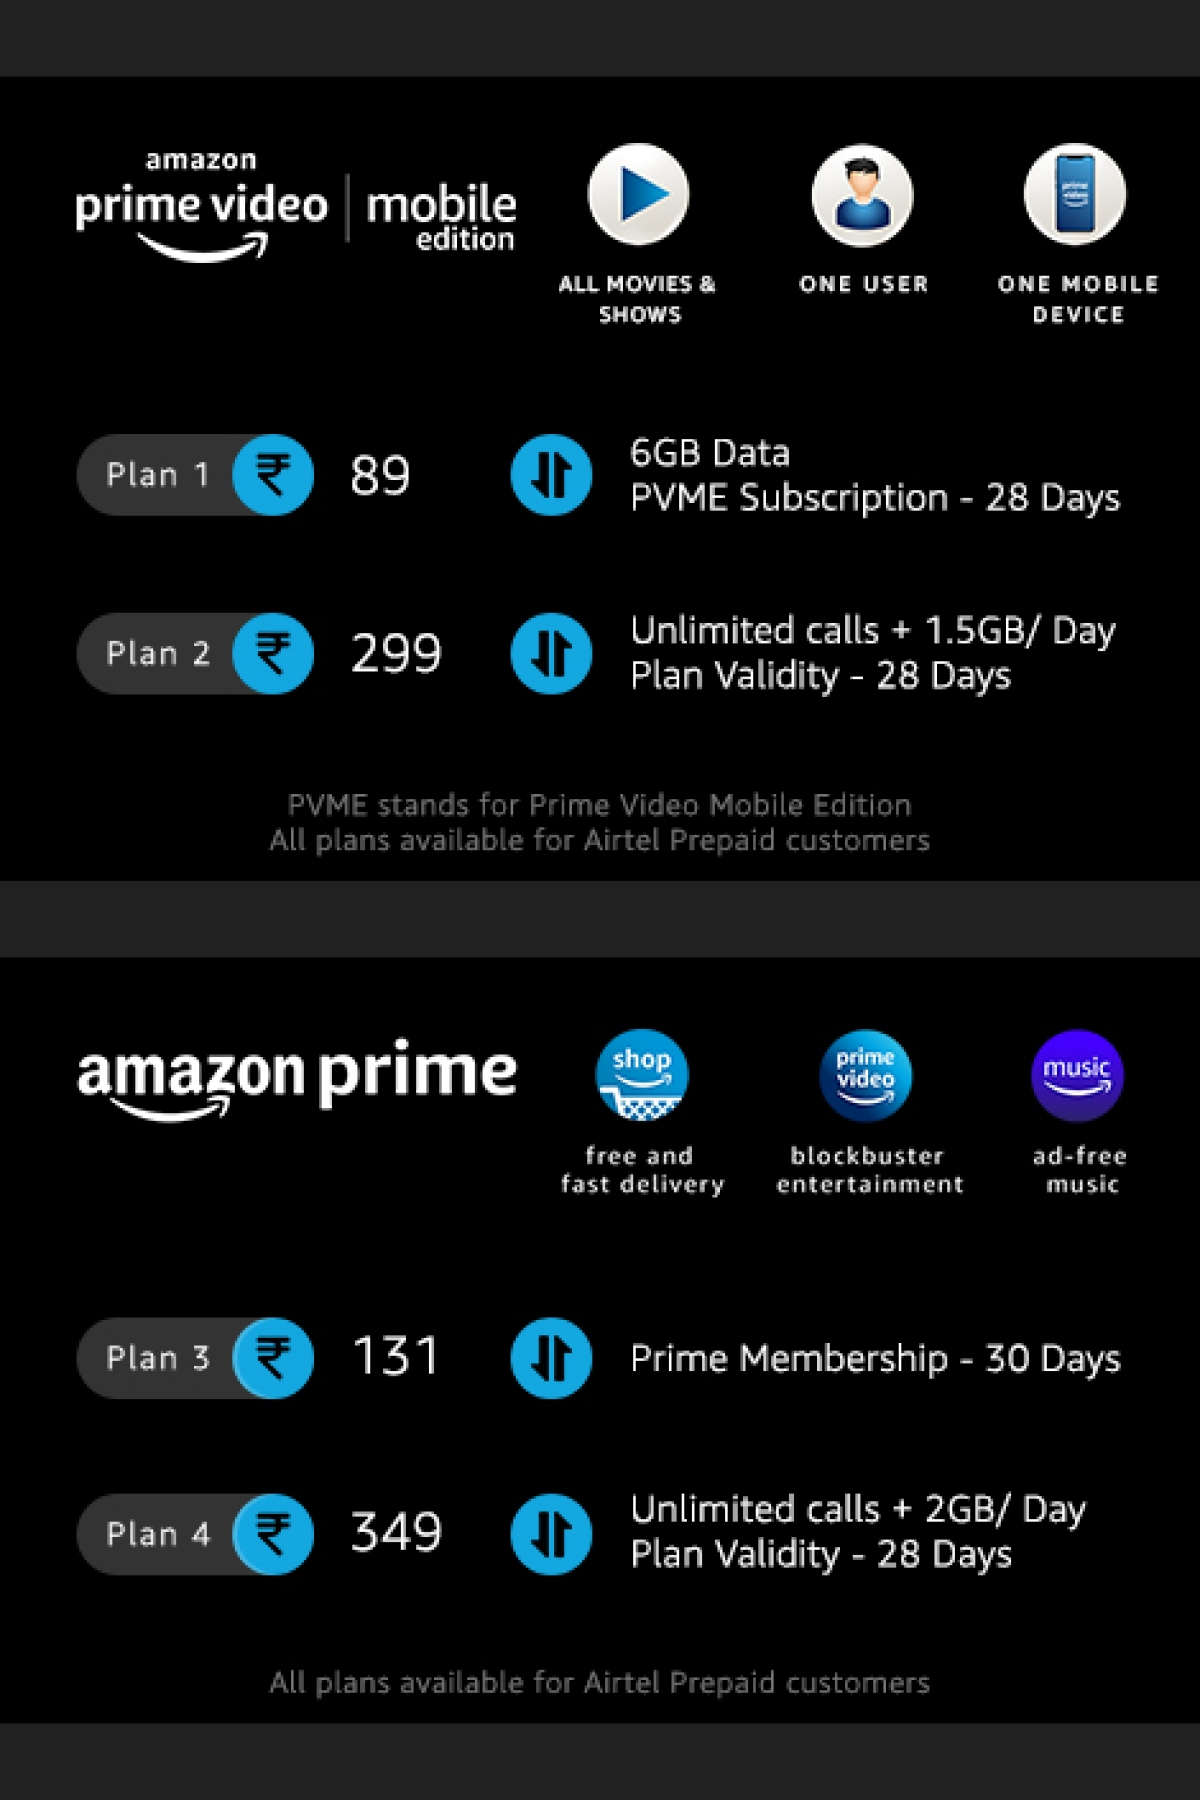 Who is Amazon Prime Video Mobile Edition for?